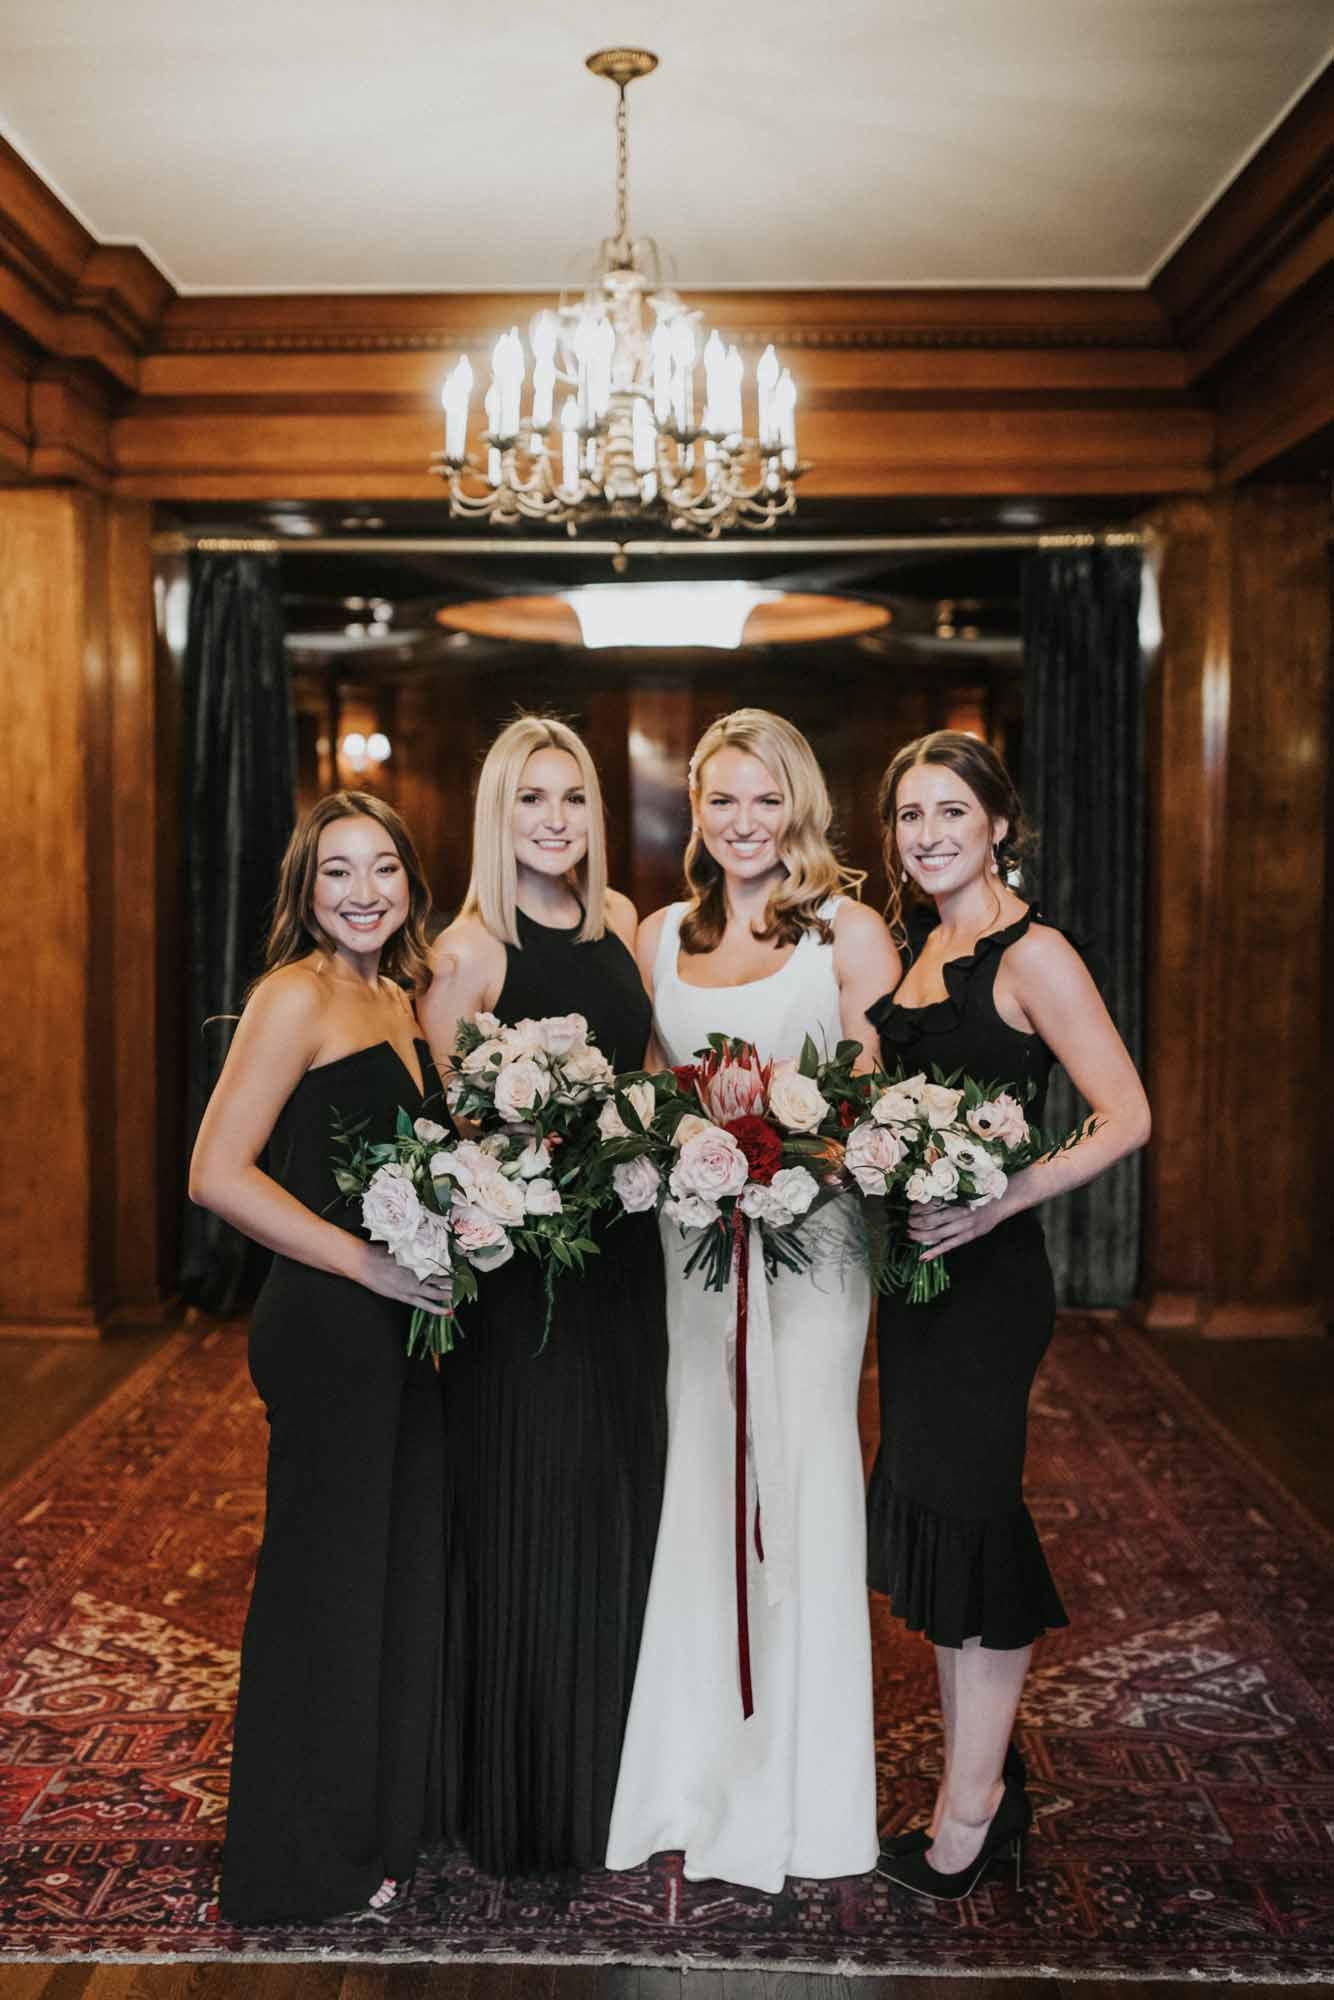 bride and bridesmaids pose with bouquets